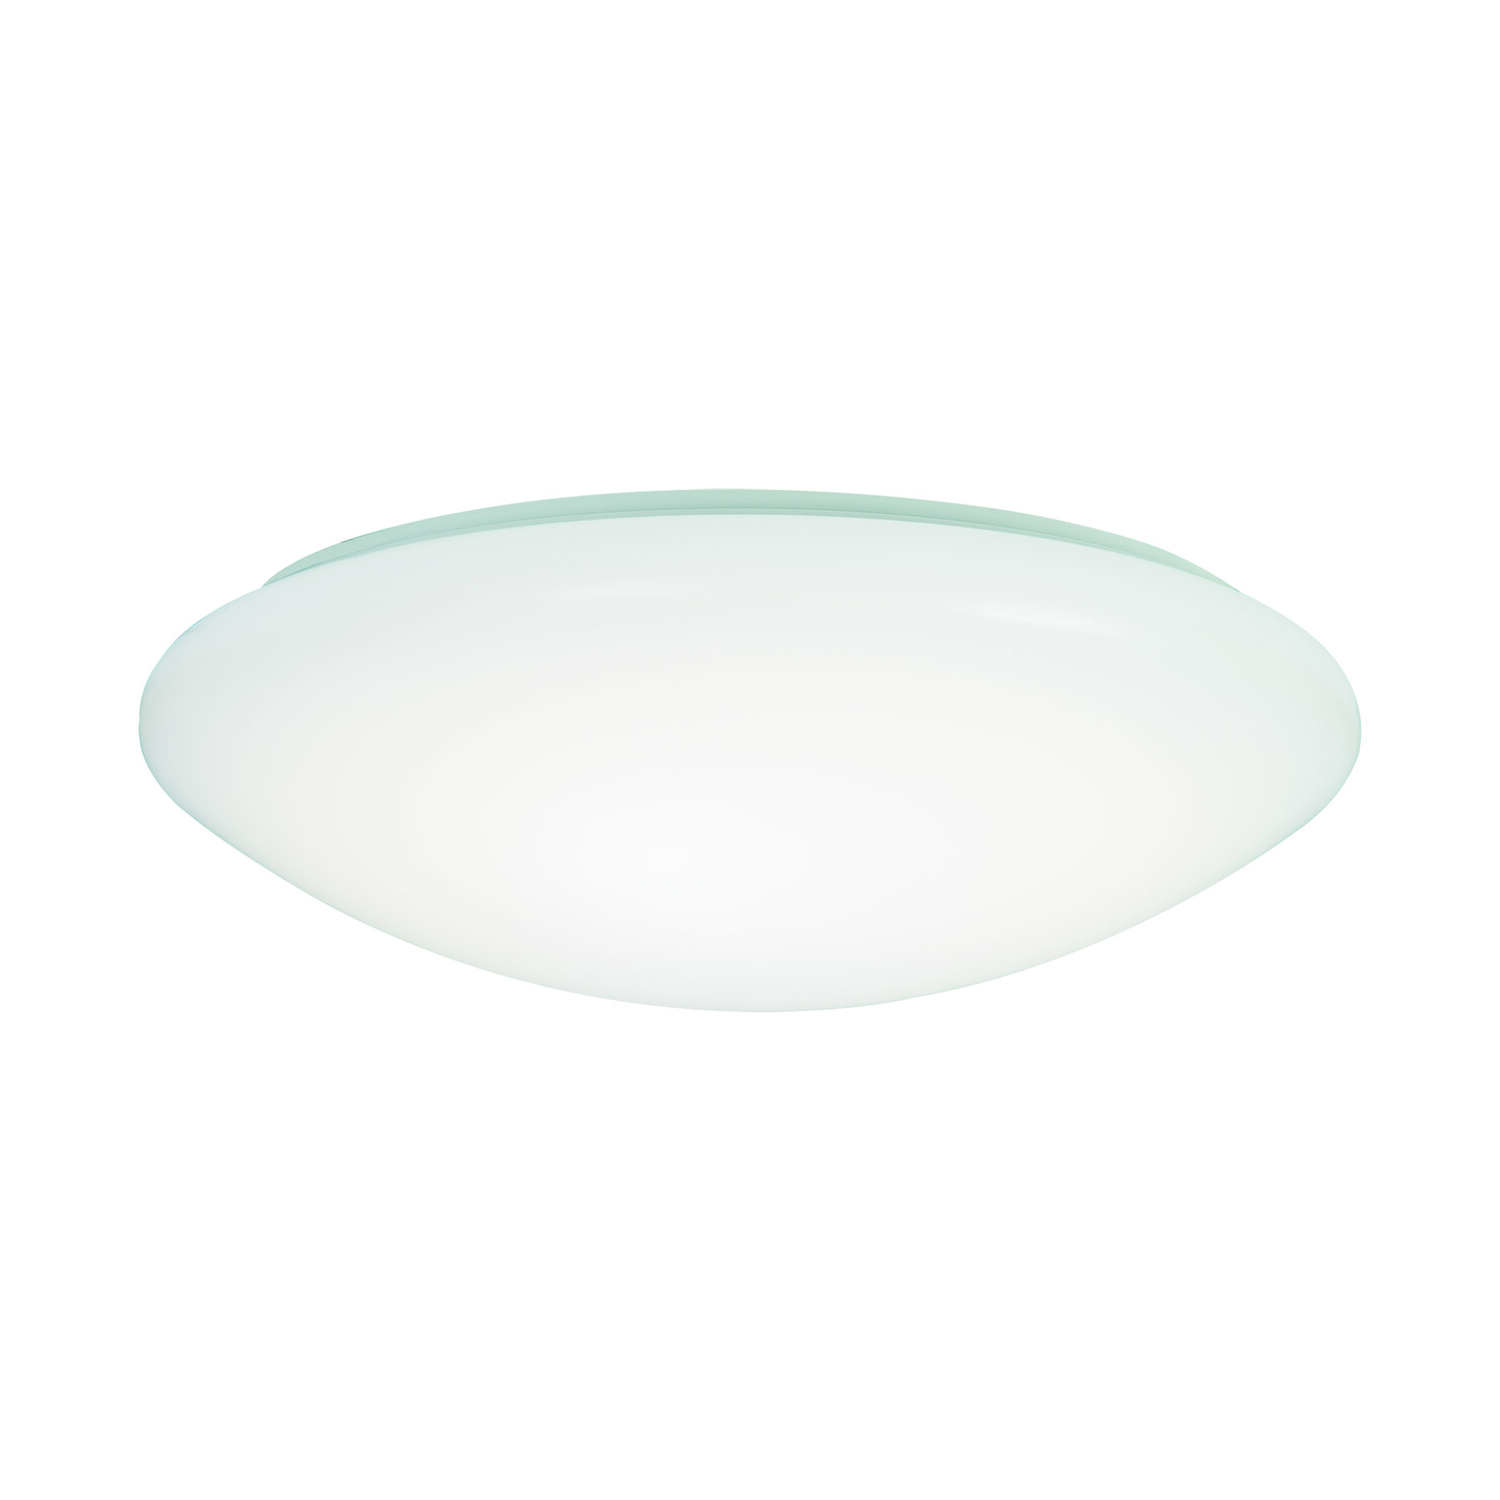 Metalux 3.2 in. H x 11 in. W x 11 in. L White LED Ceiling Light